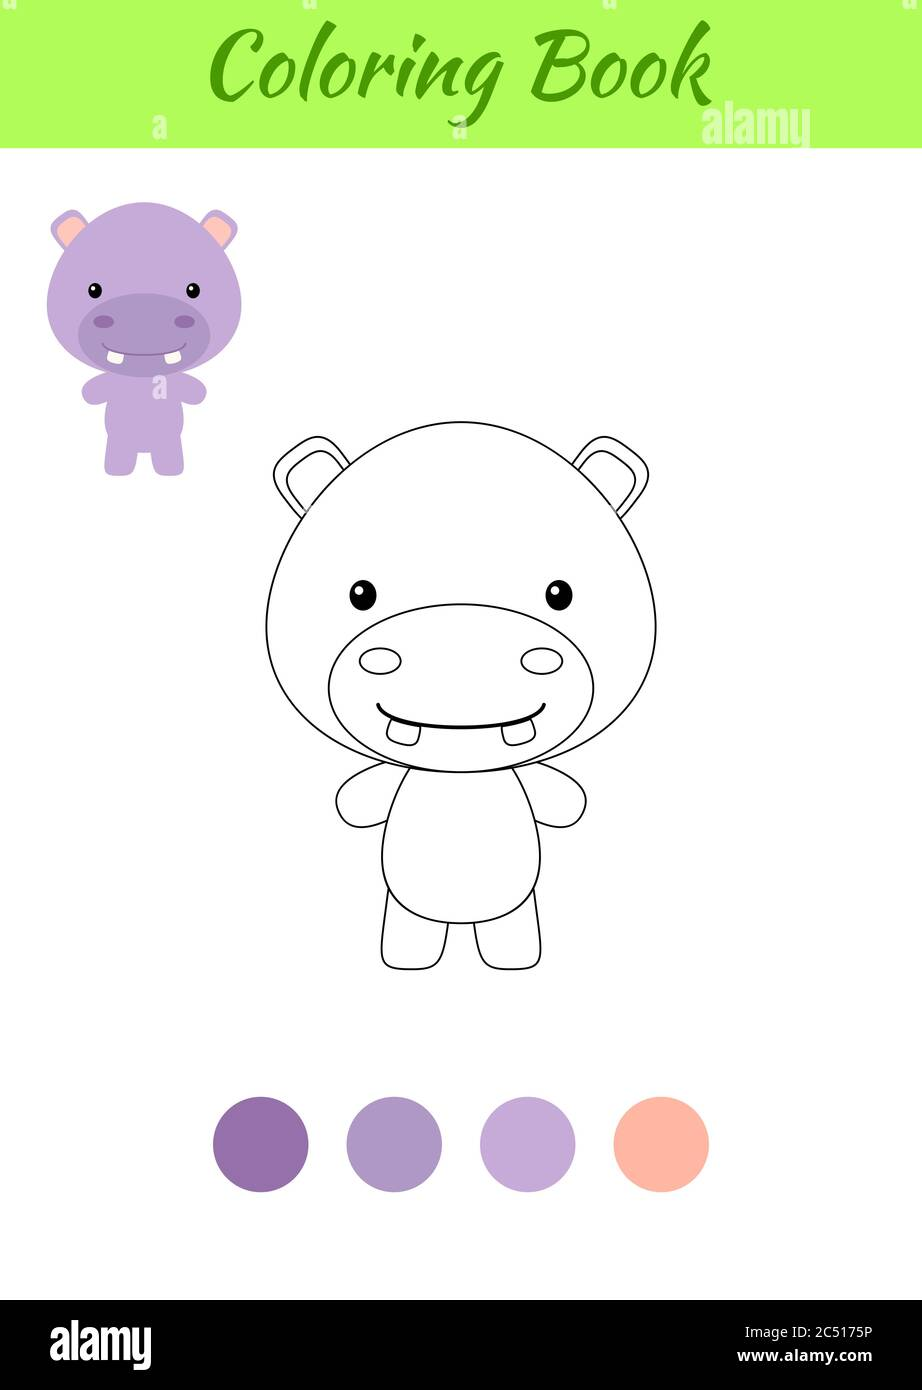 Coloring Page Happy Little Baby Hippo Coloring Book For Kids Educational Activity For Preschool Years Kids And Toddlers With Cute Animal Stock Vector Image Art Alamy